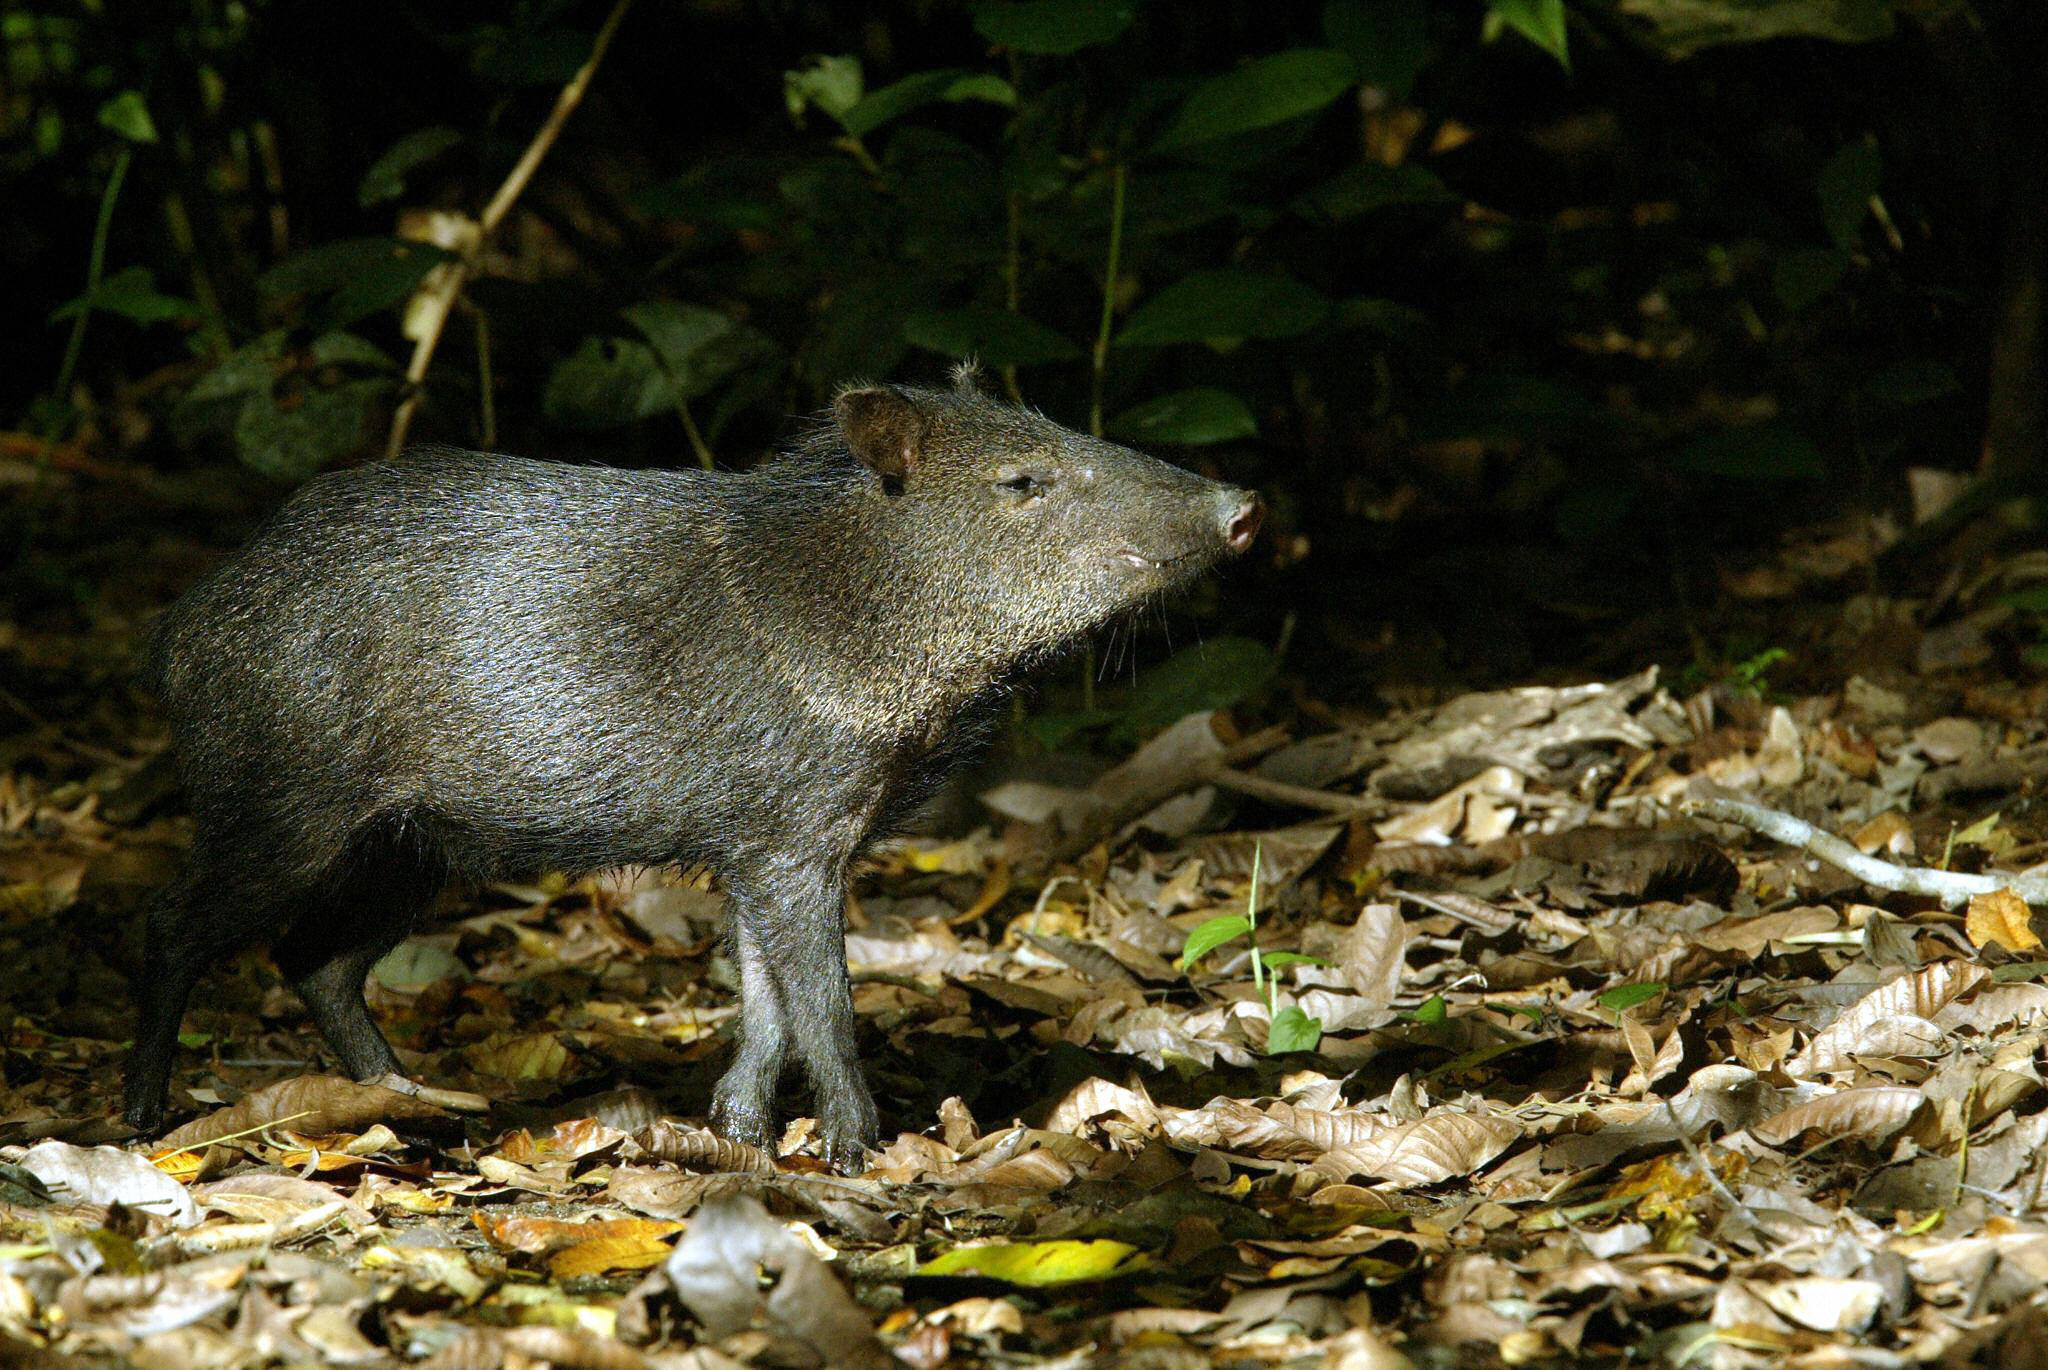 The internet is captivated by a very fast javelina